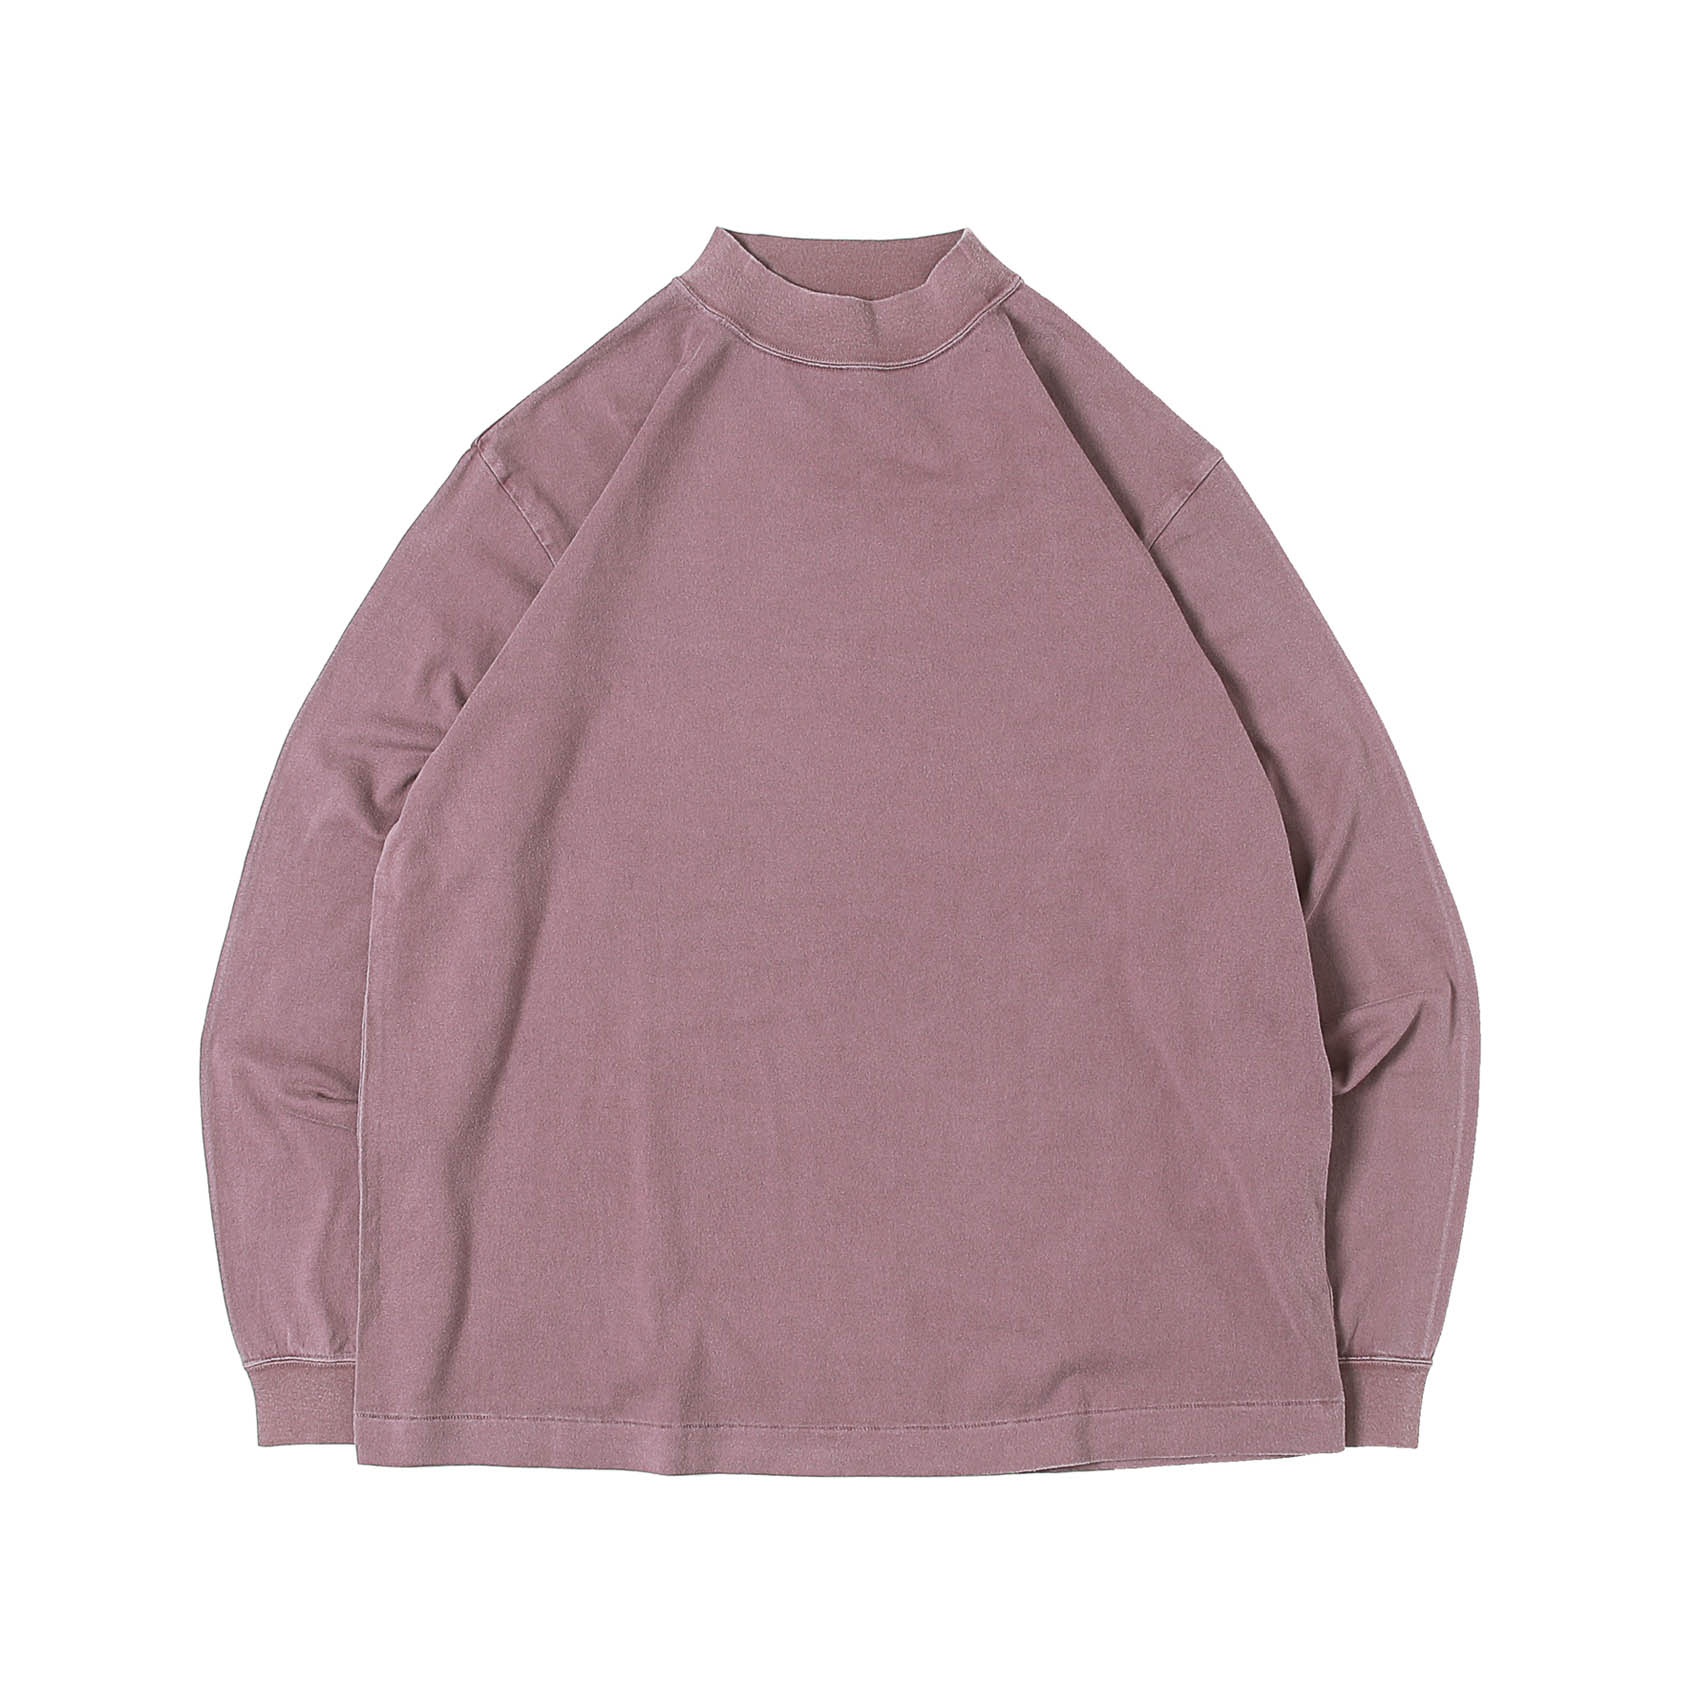 L/S MOCK NECK TEE - PURPLE